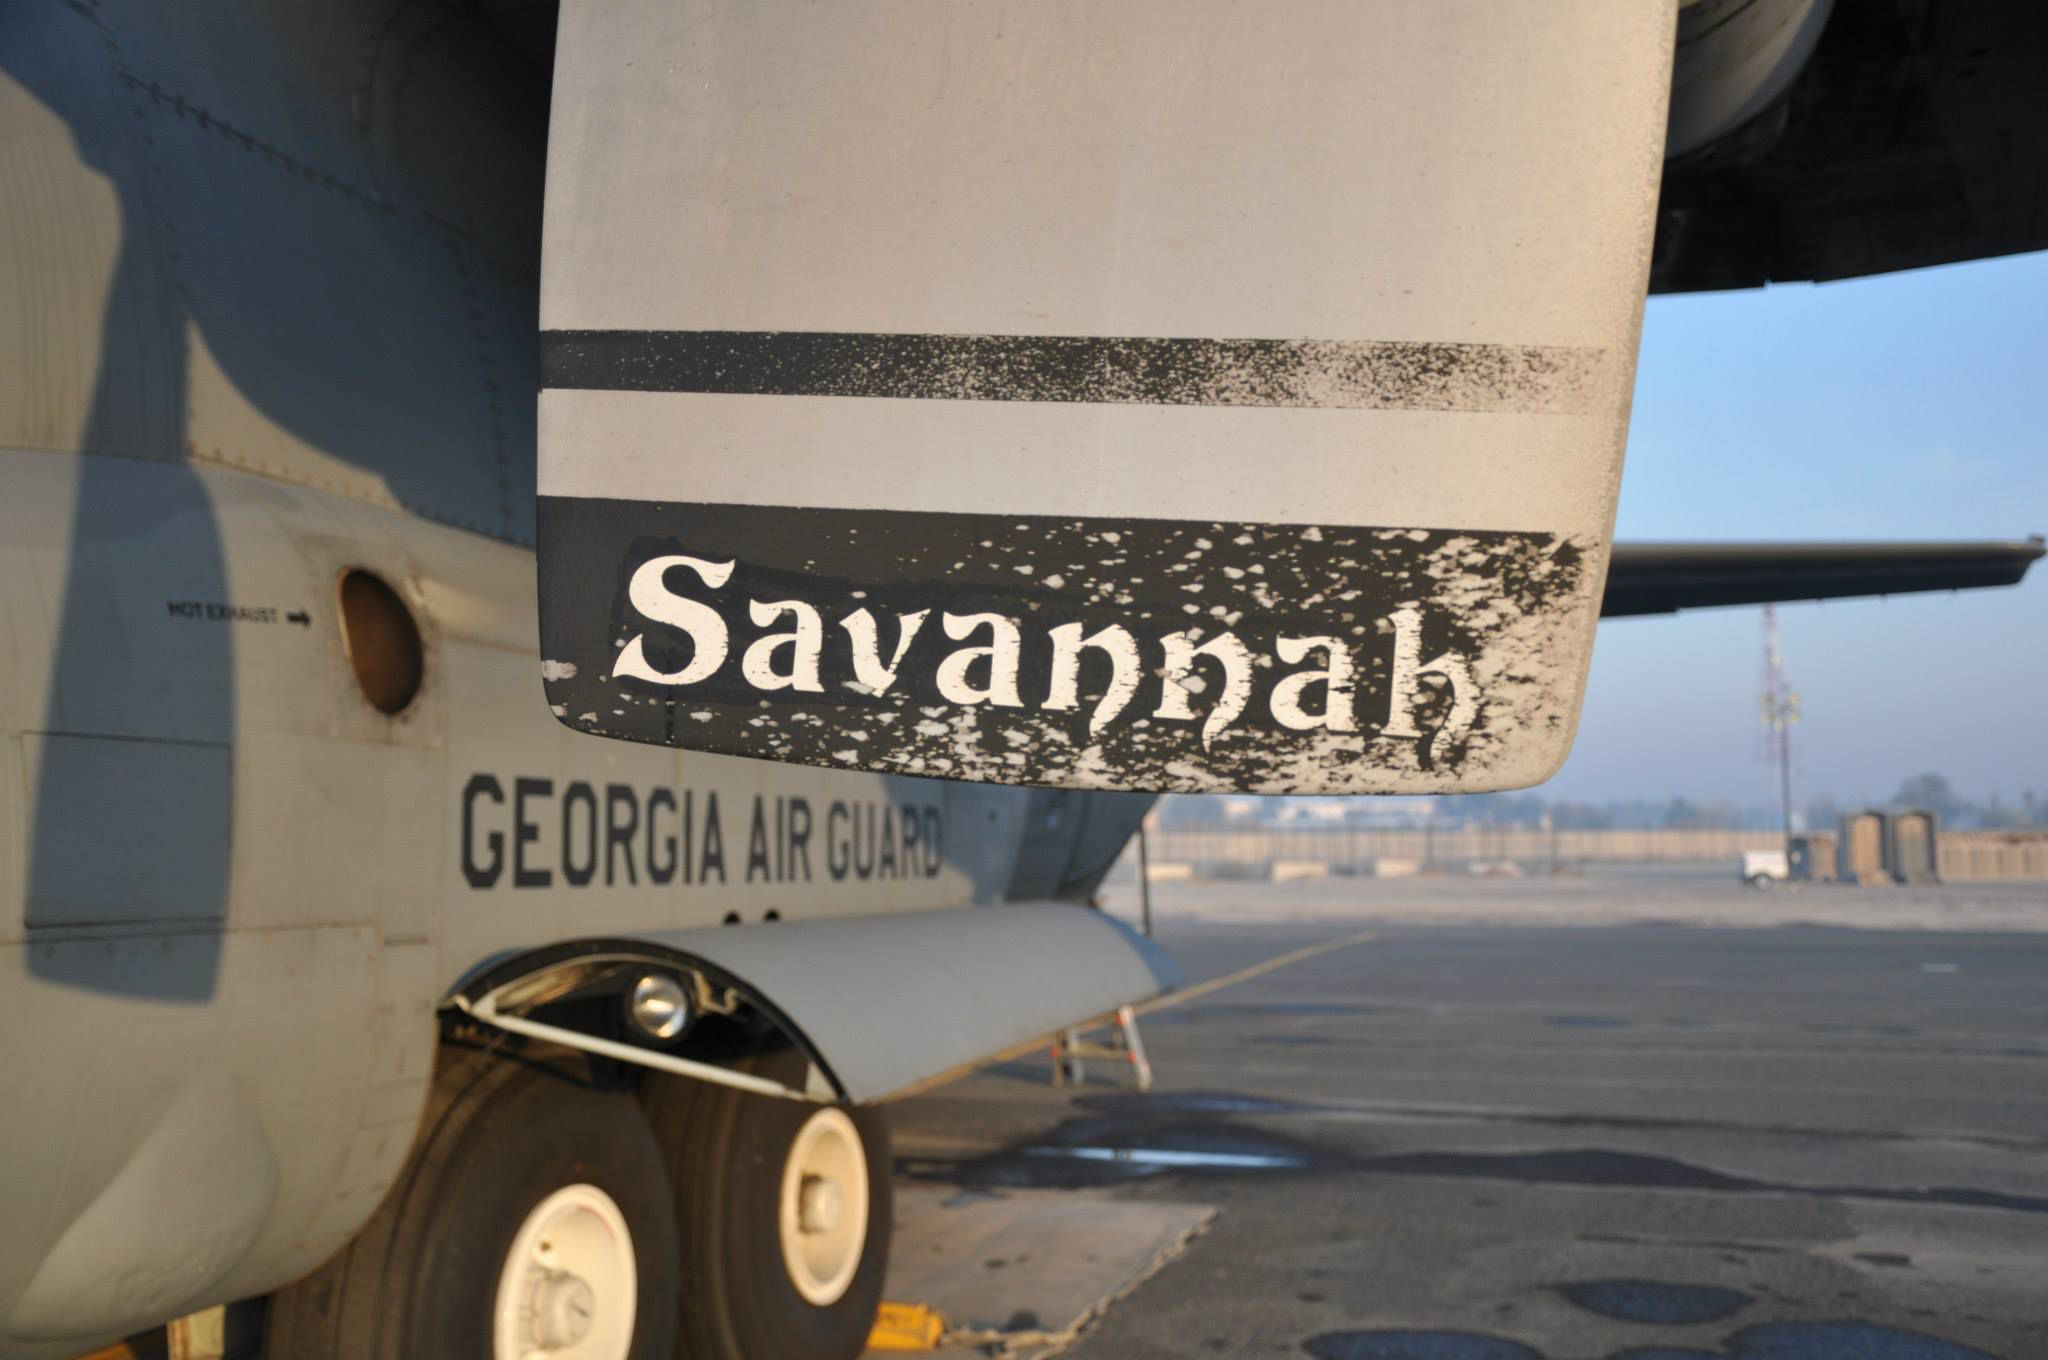 FBI seeks suspects who pointed laser at military aircraft in Georgia